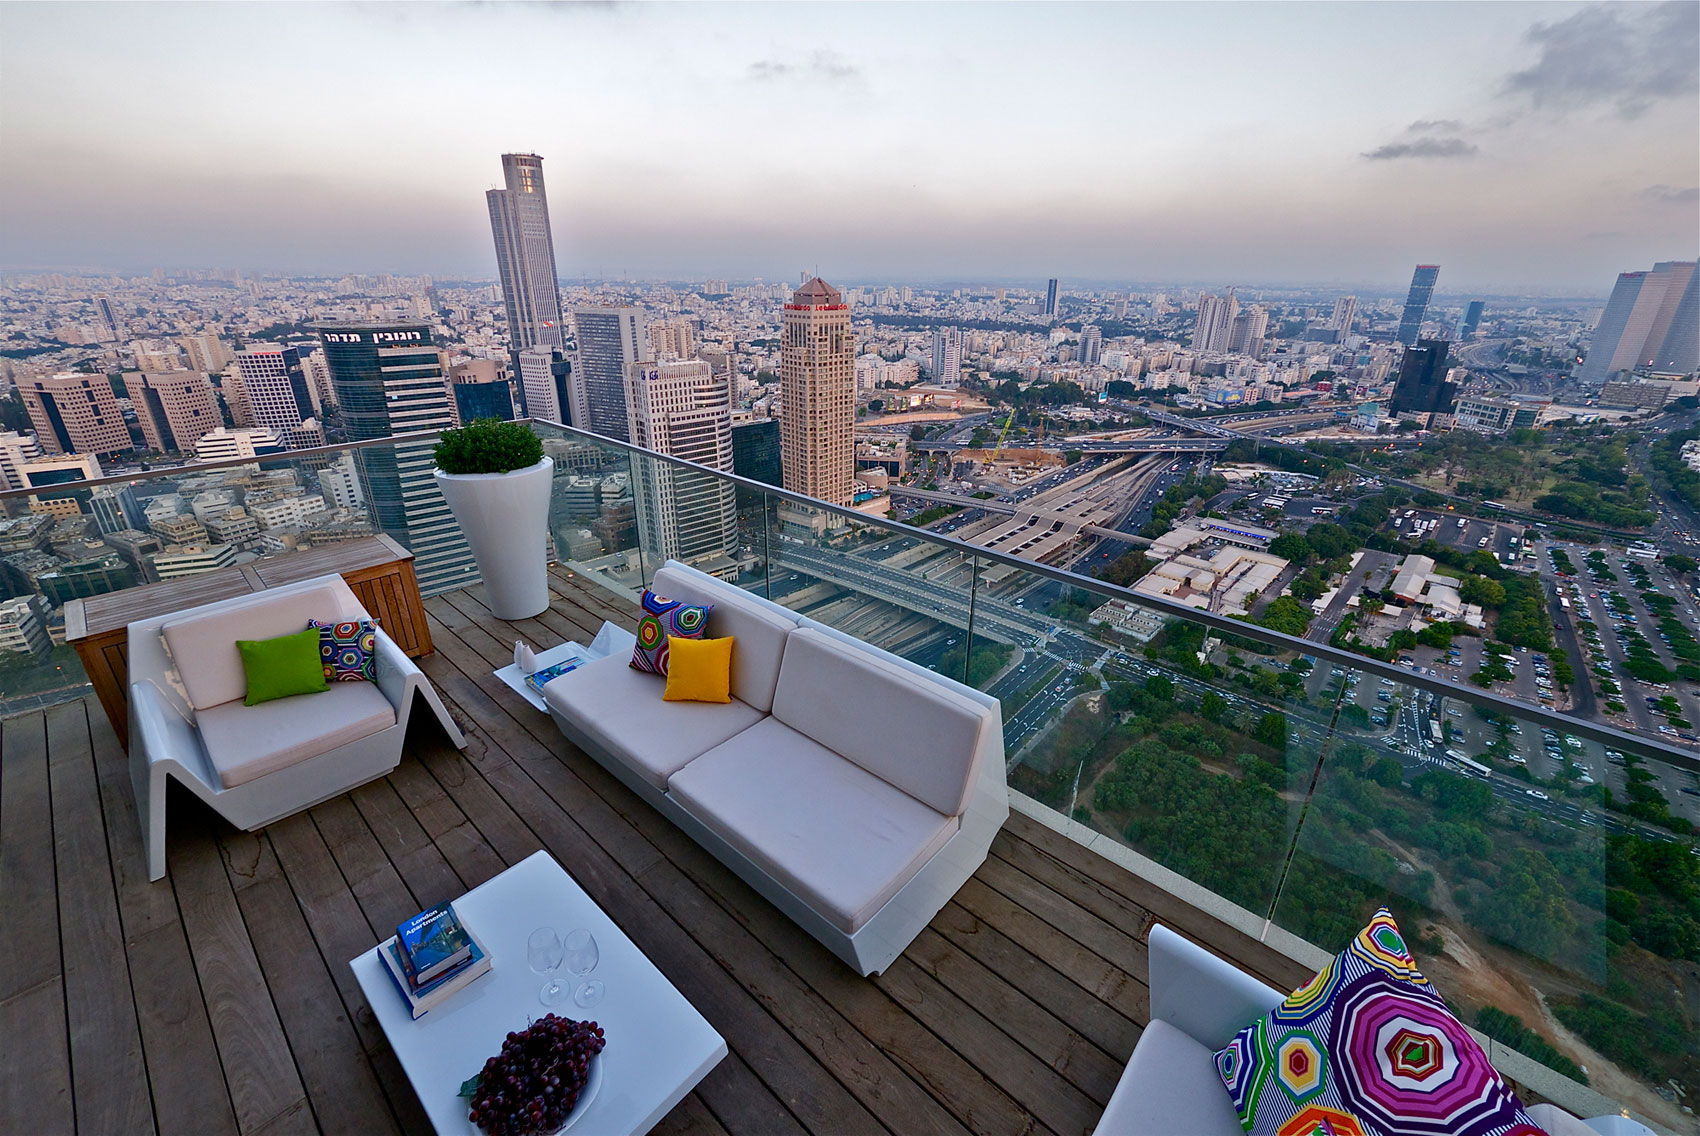 Penthouse Roof Terrace